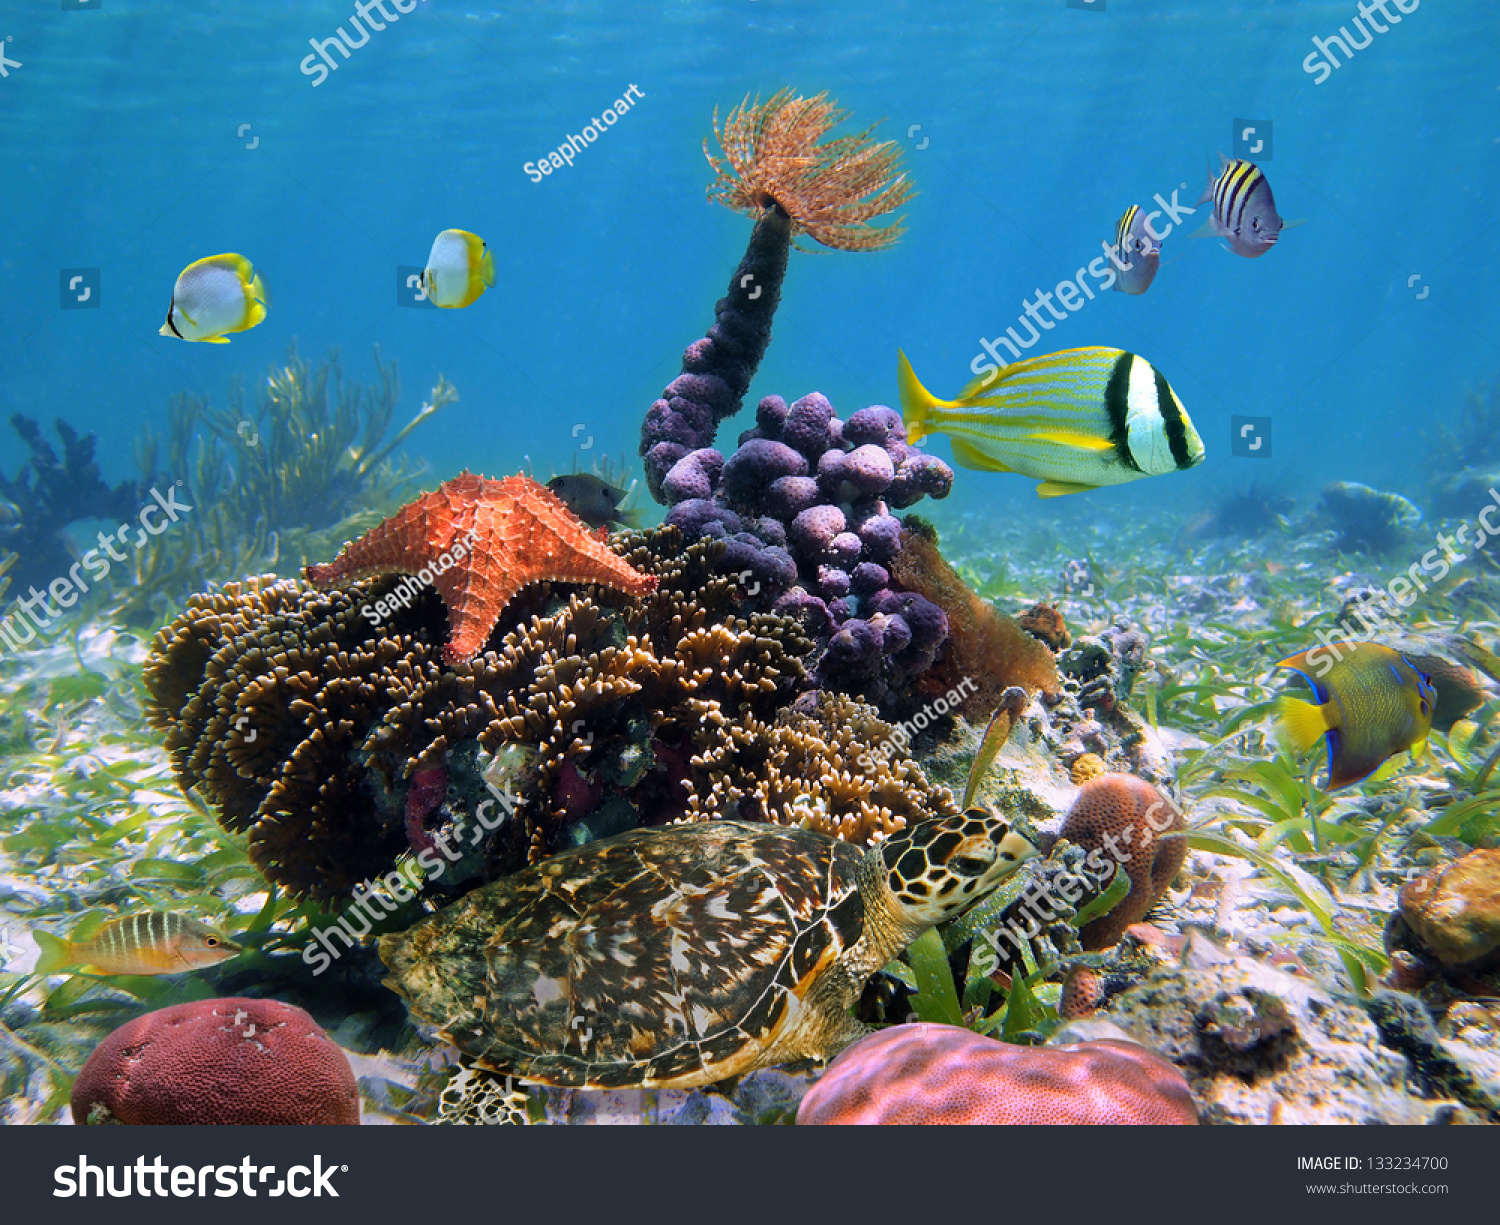 Colorful Underwater Marine Life In A Shallow Coral Reef ... |Colorful Underwater Life